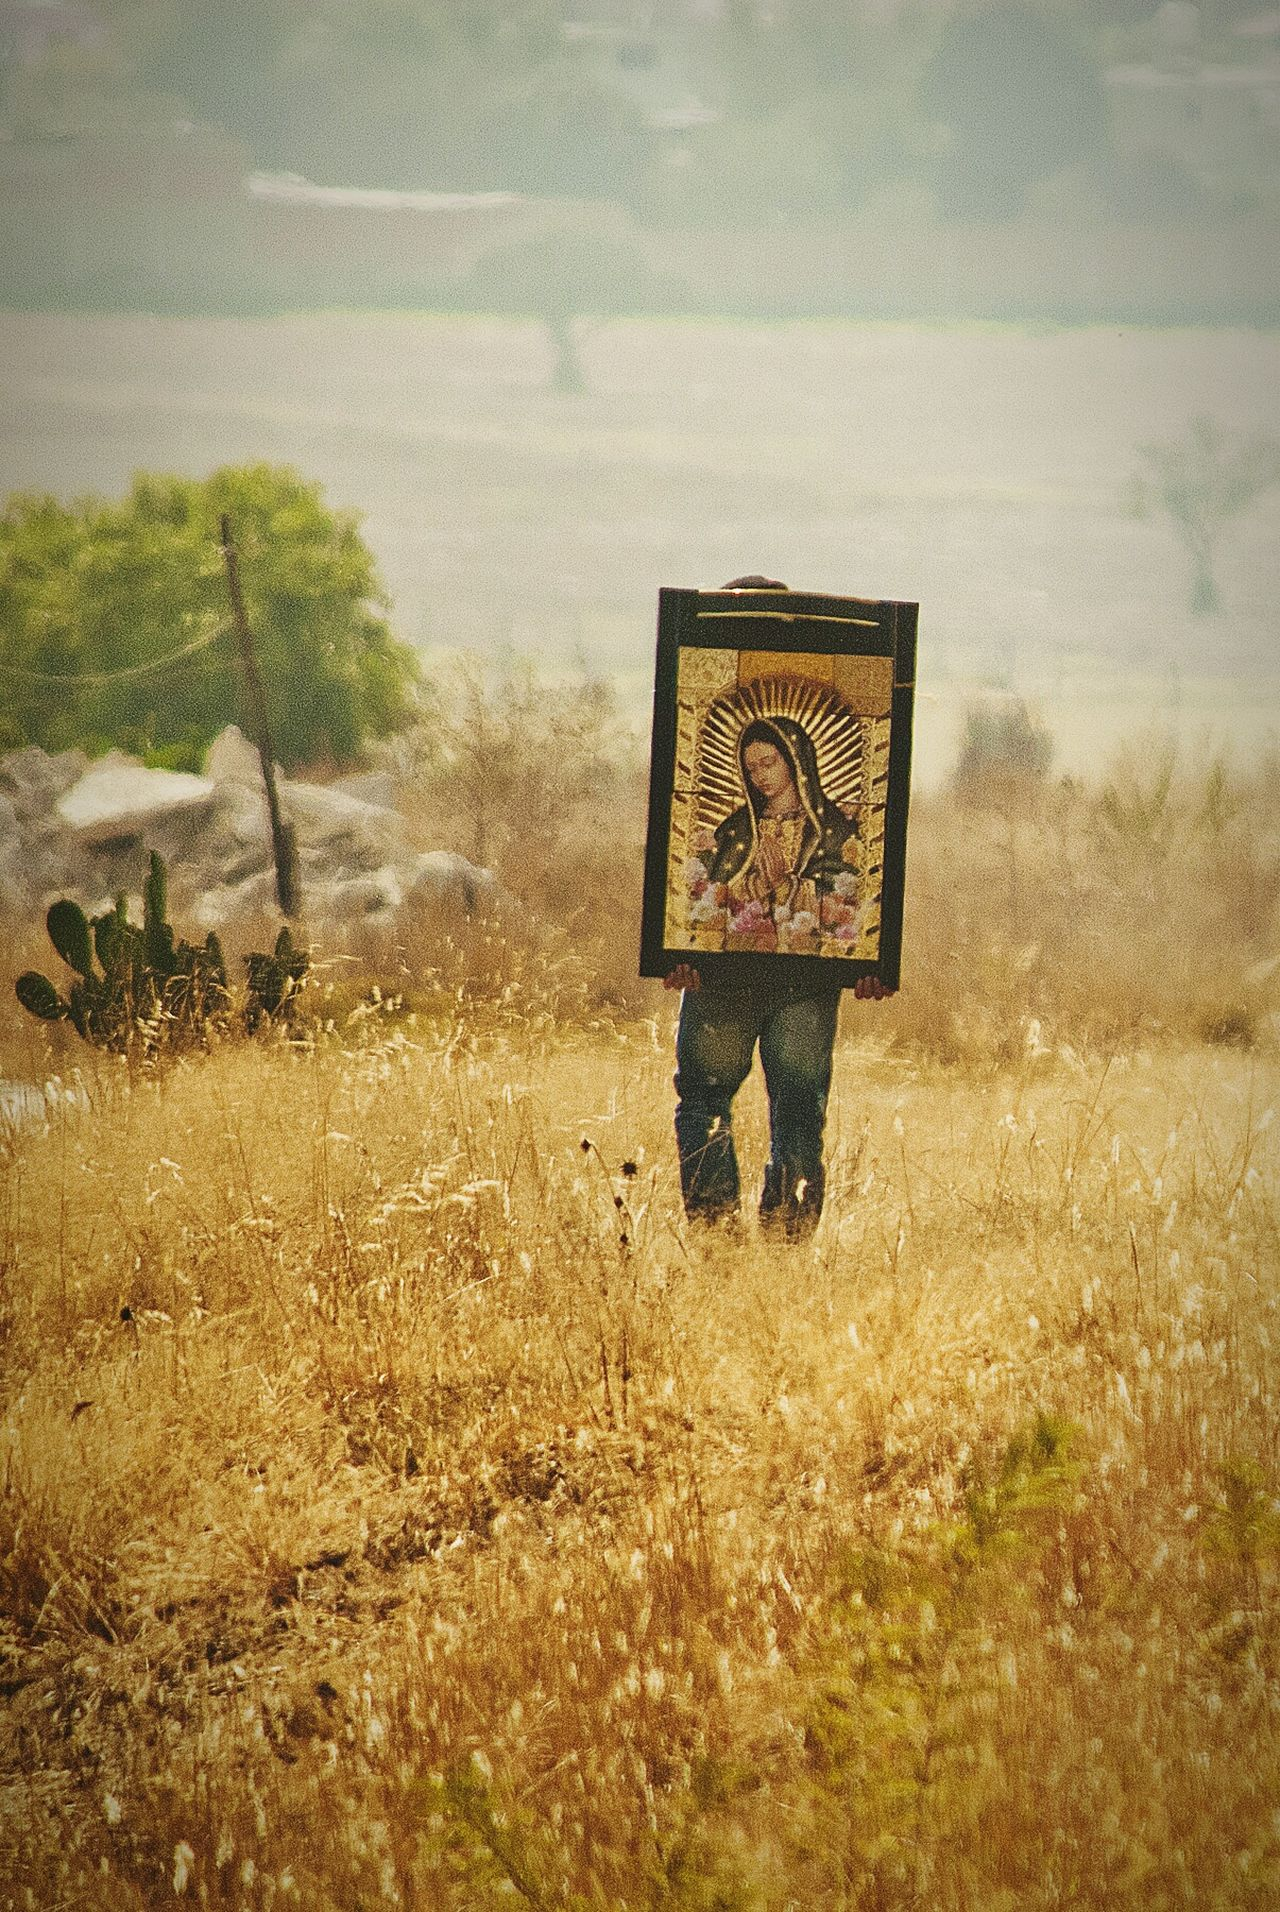 Fields Of Gold Religion And Tradition Religious Images Carry On Walking Walking Alone... Mexico Virgen De Guadalupe Pilgrim Pilgrimage Tree Field Real People One Person Day Grass Outdoors Nature